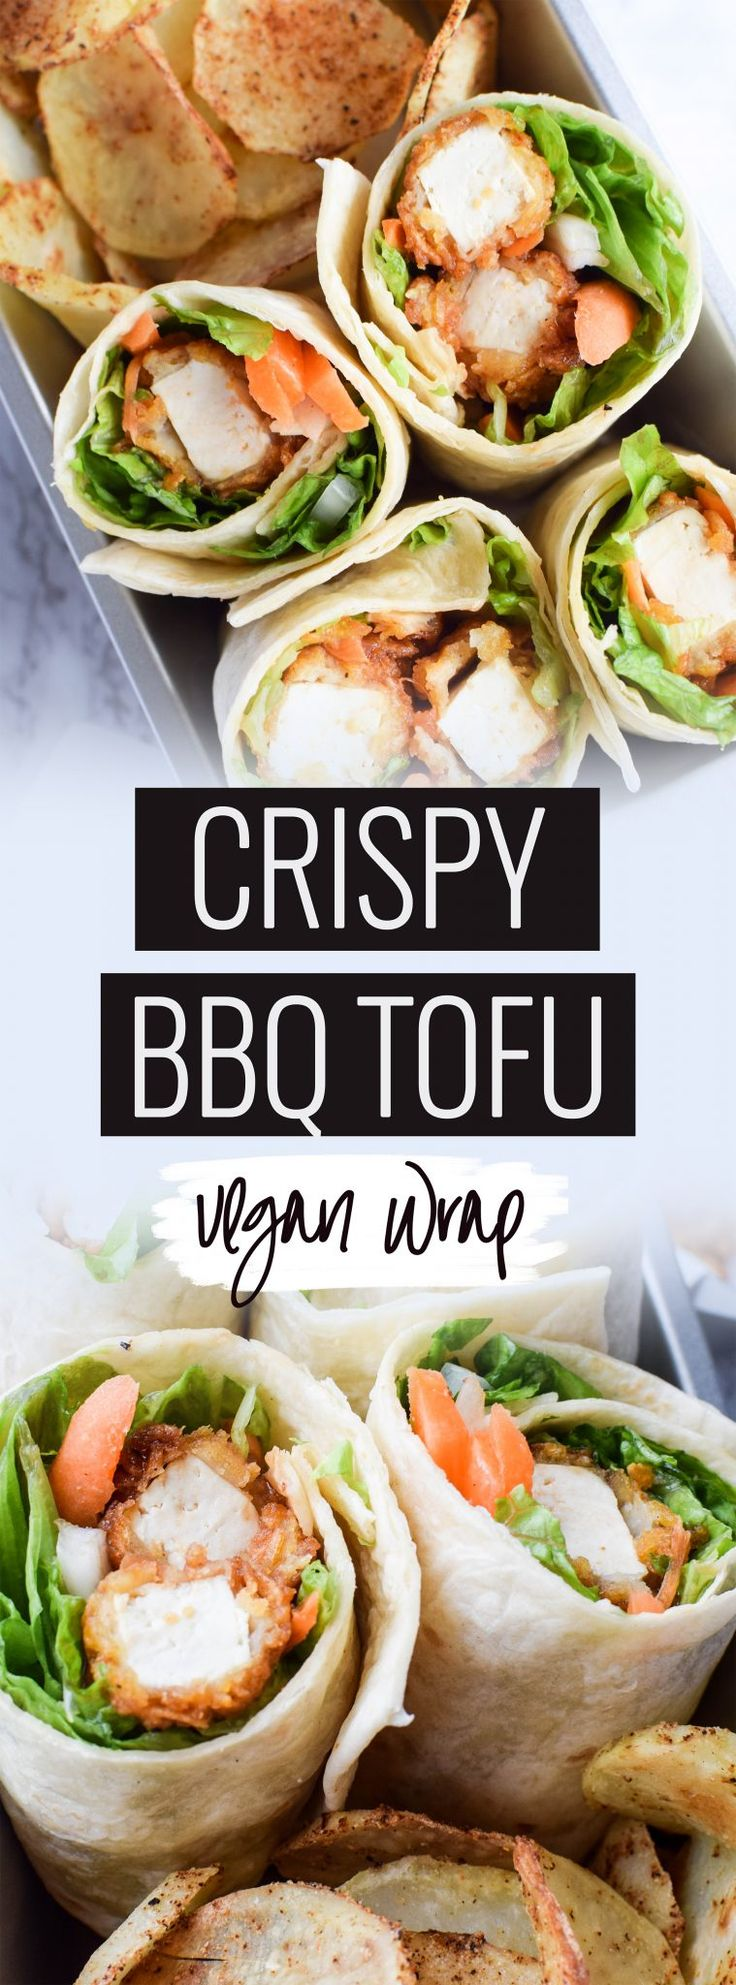 Crispy BBQ Tofu Wraps / Vegan Lunch / Easy Vegan Lunch / Plant Based Lunch / Crunchy Tofu / Meal Prep Lunch / Lunch Box Lunch / Vegan Bento Box / School Lunch Idea / Vegan Meal Prep / Healthy Lunch / Vegan Wrap